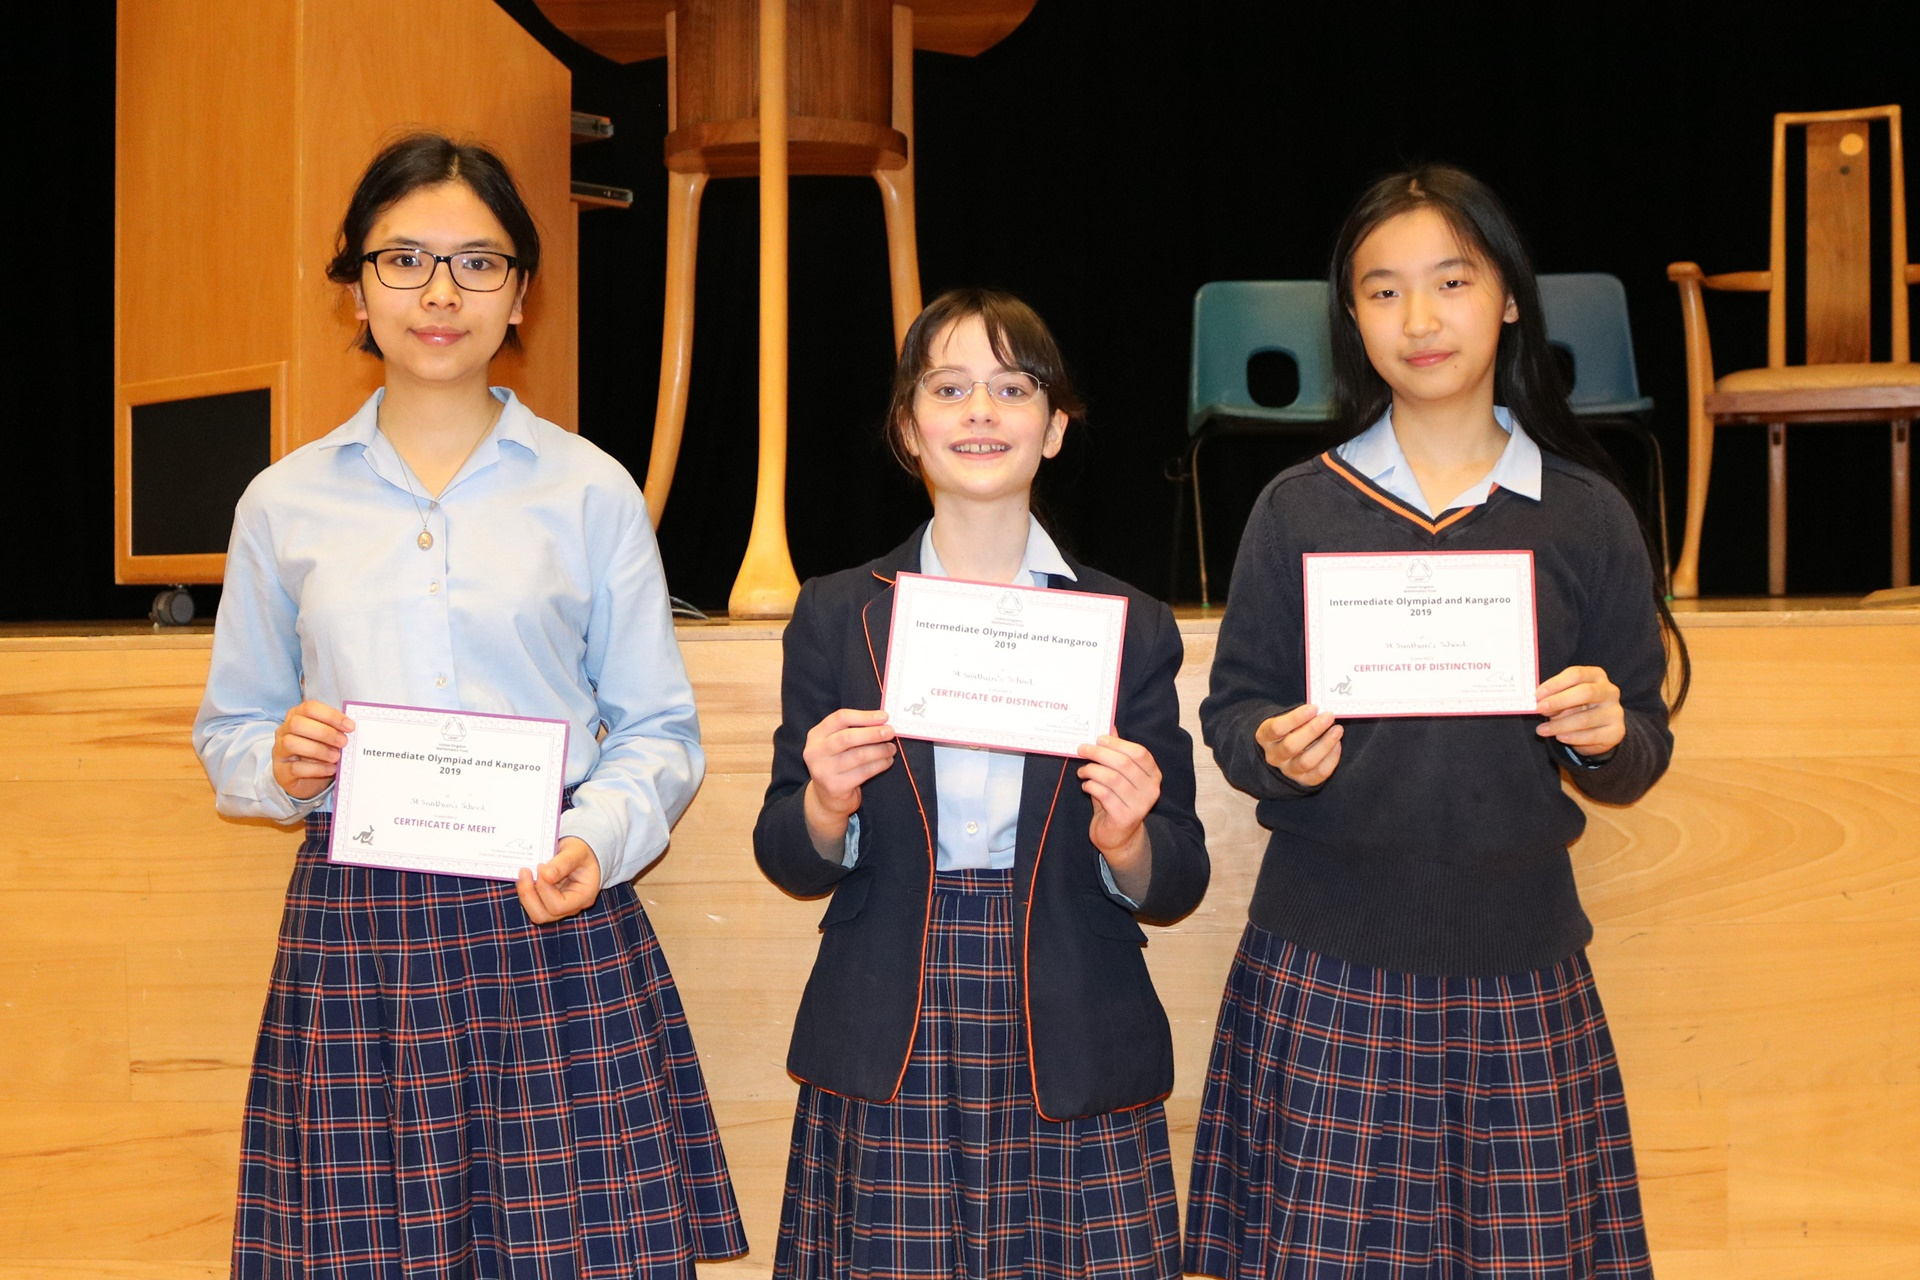 St Swithun's Maths Olympiad success 2019